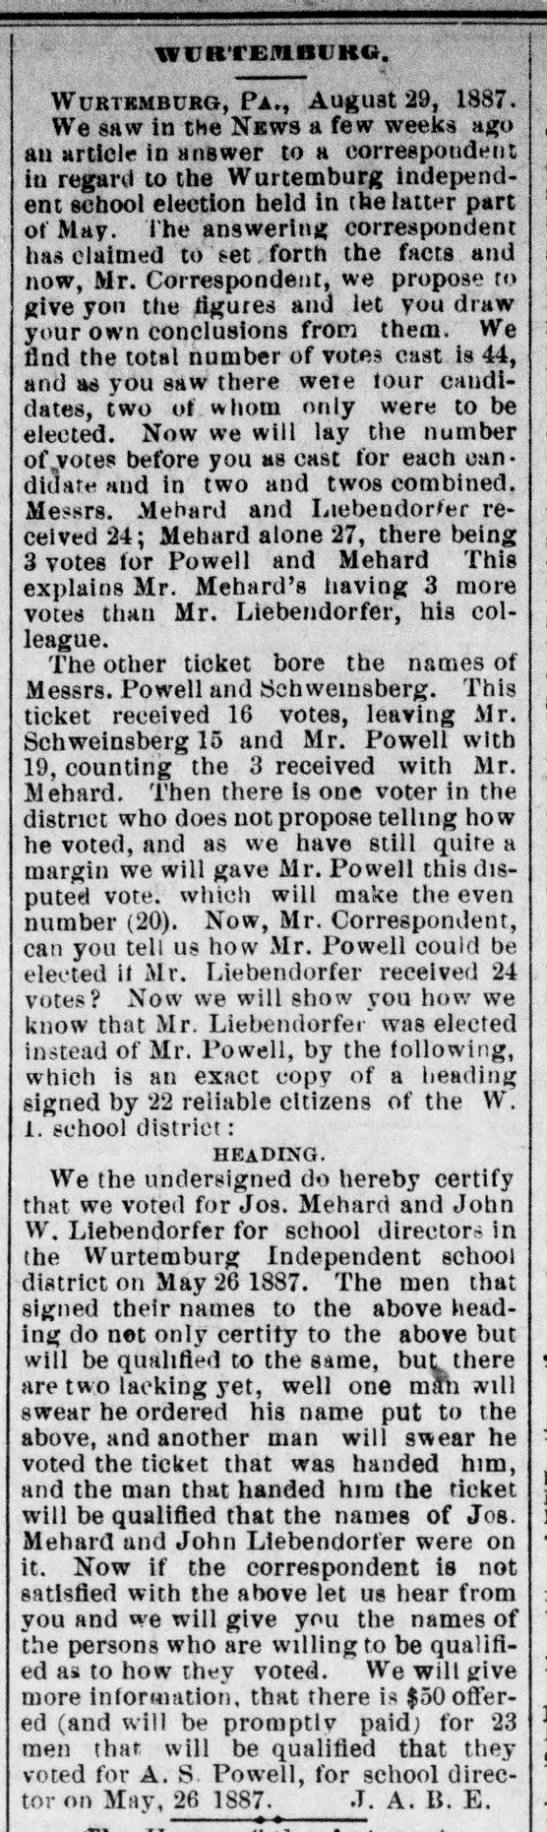 Joseph Mehard - Election For School Board = The Daily City News of New Castle, PA. - Aug. 31, 1887  - WlIRTEiUlllJKG. WURTKMBURG, P a ., August 29,...